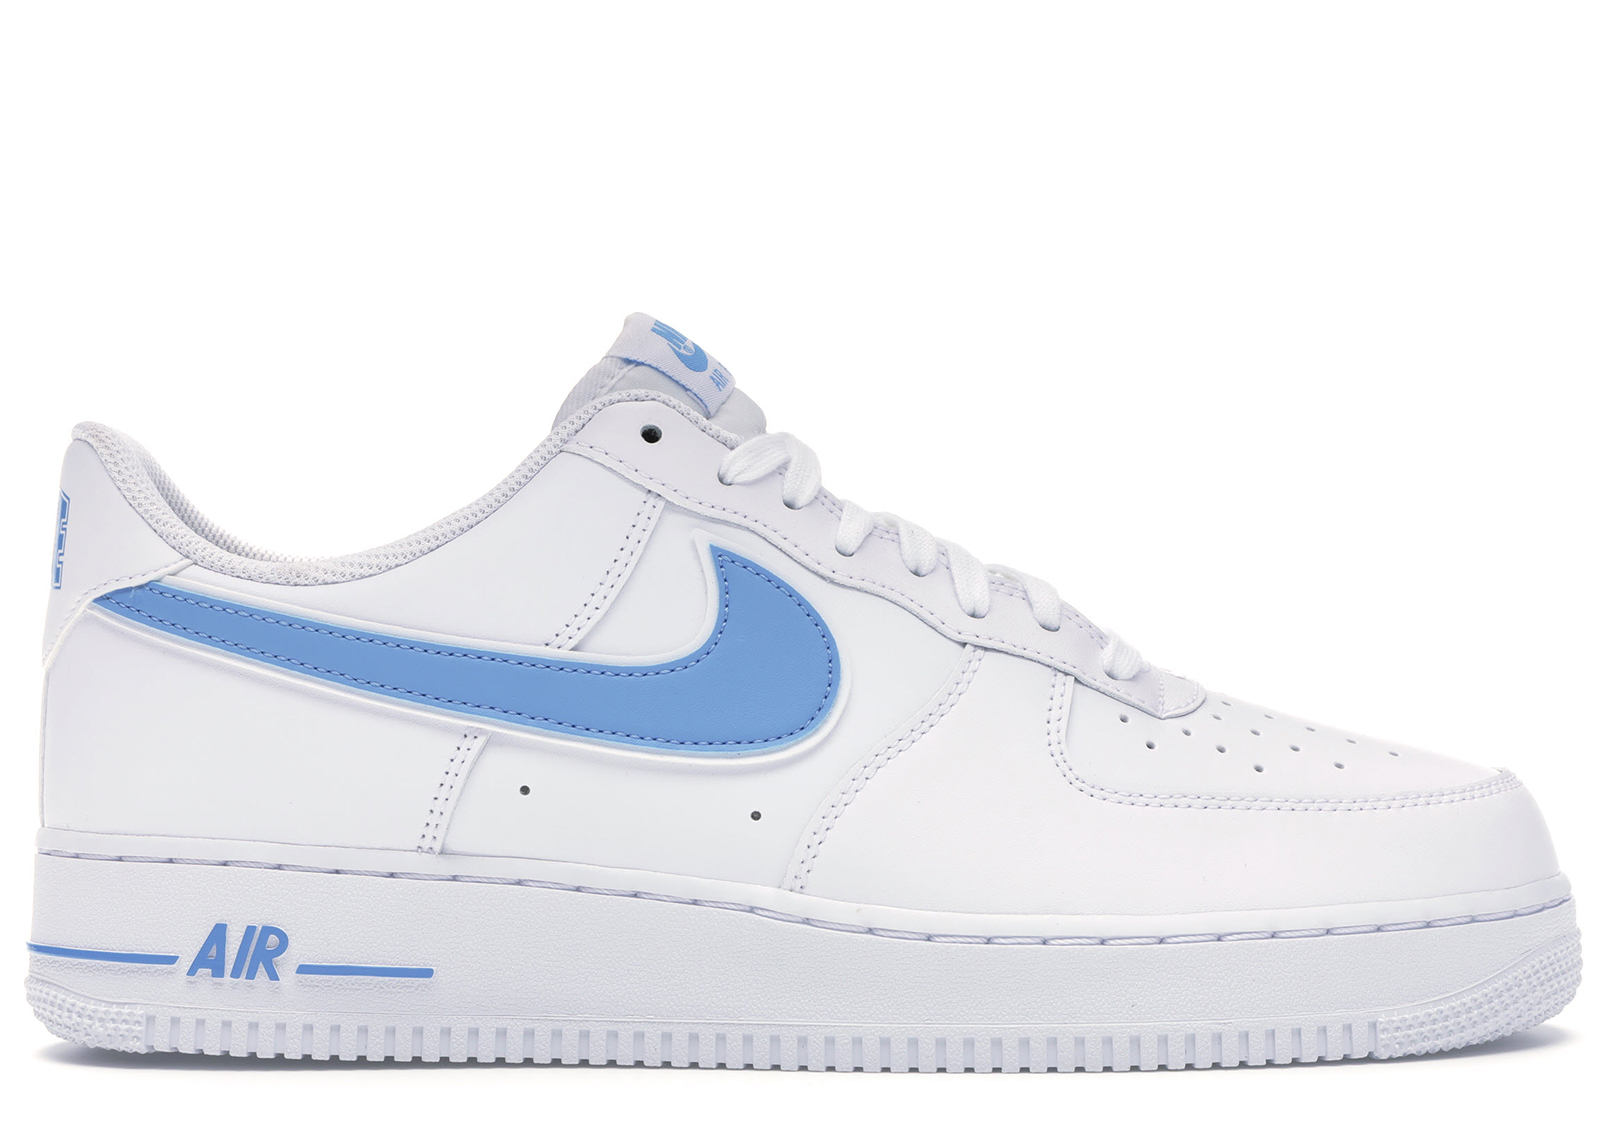 Nike Air Force 1 Low White University Blue